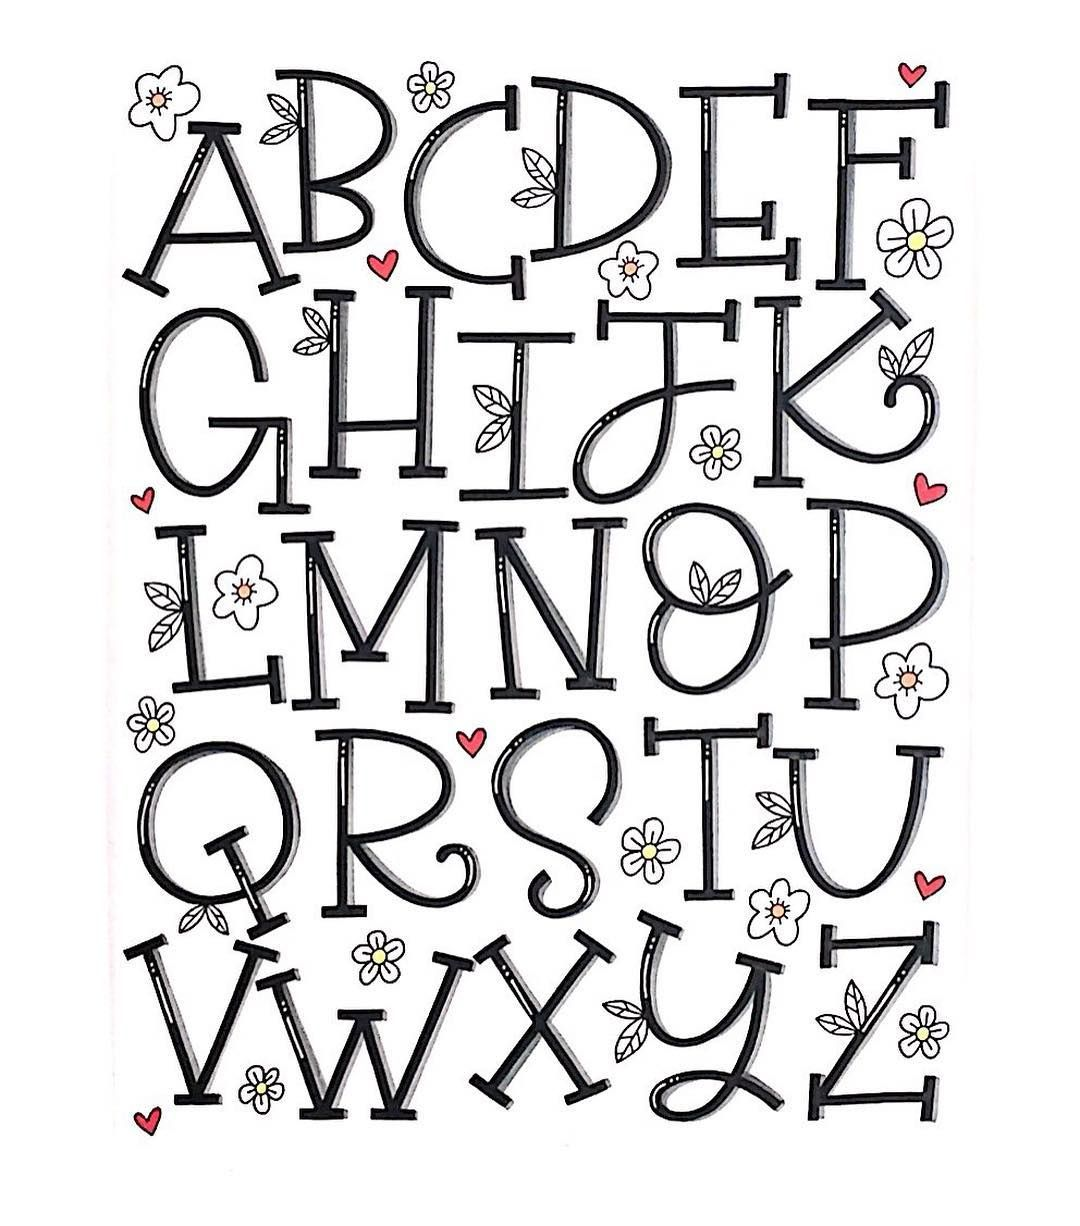 Alphabet frs handlettering drawingwriting pinterest fonts alphabet frs handlettering altavistaventures Gallery